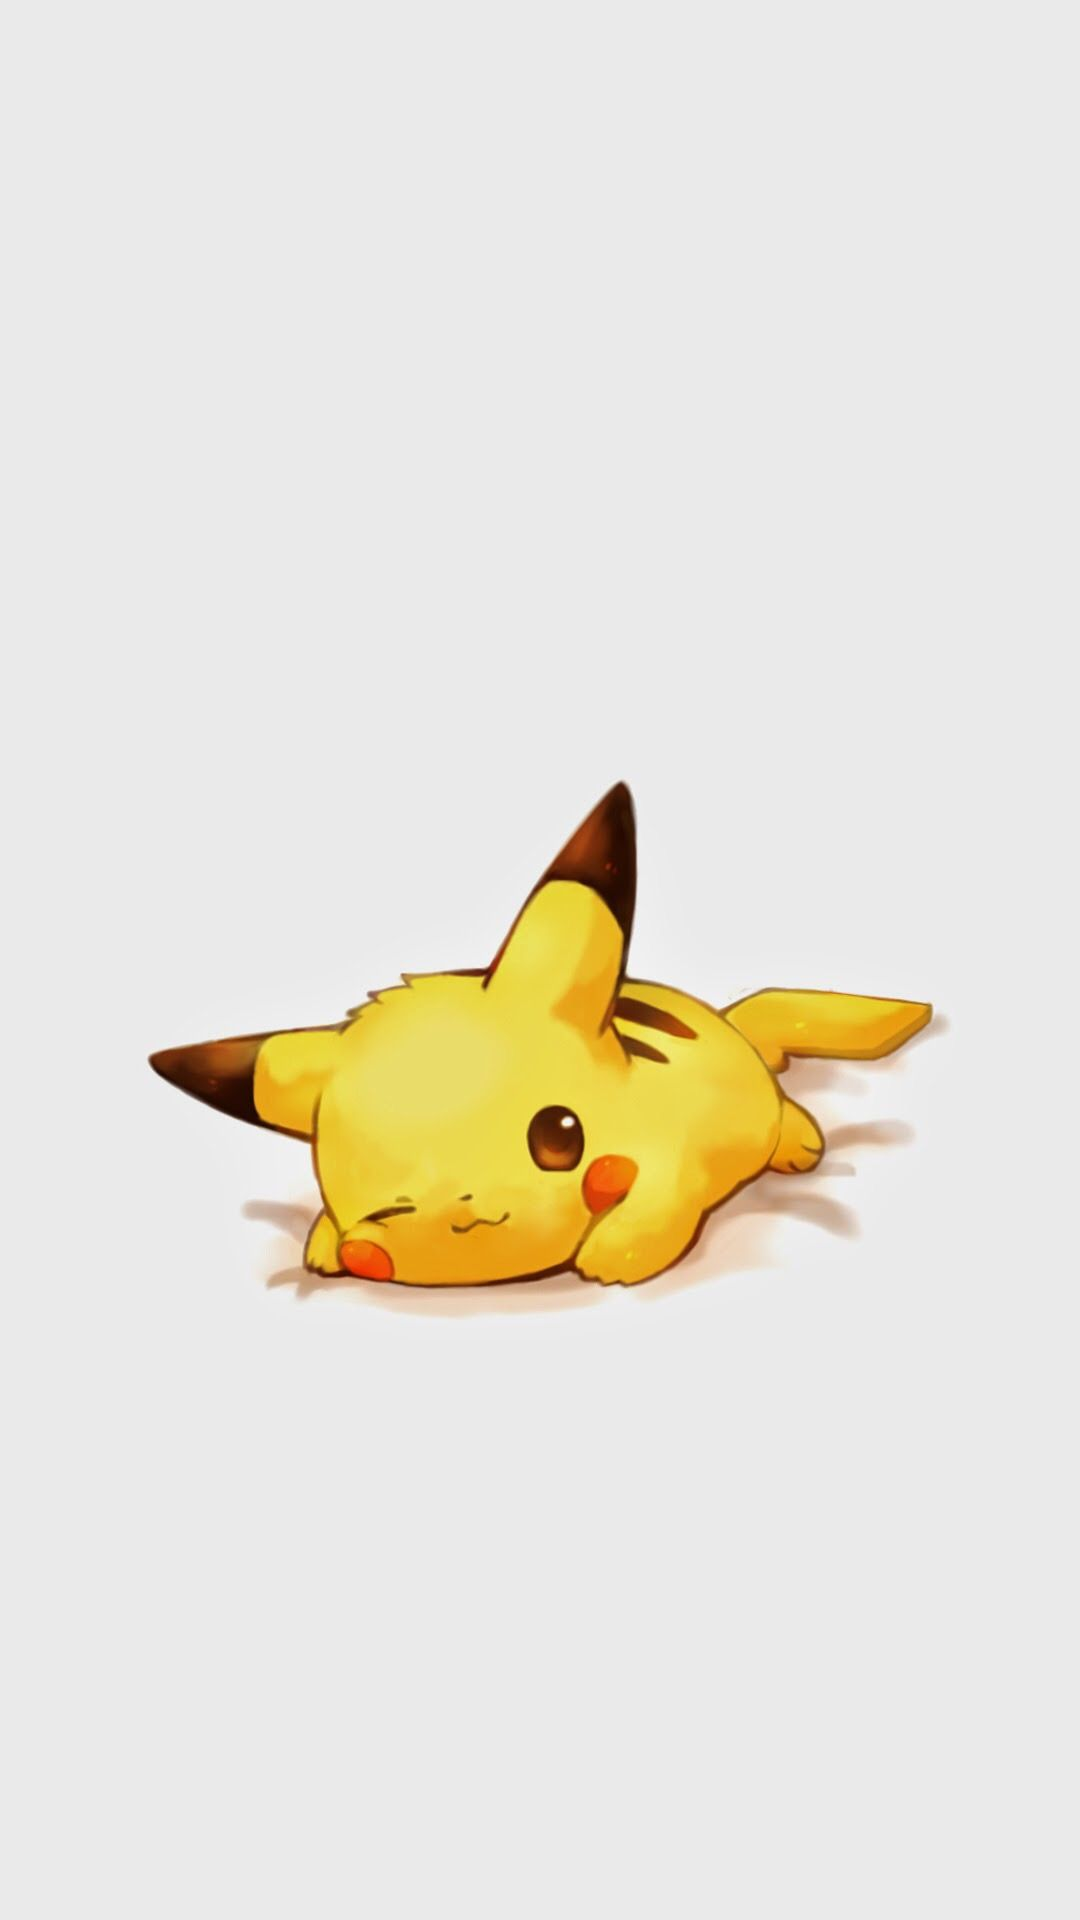 Great 9 Pikachu Wallpapers For Your Android Or Iphone Wallpapers Android Iphone Wallpaper Pikachu Wallpaper Cute Pokemon Pokemon